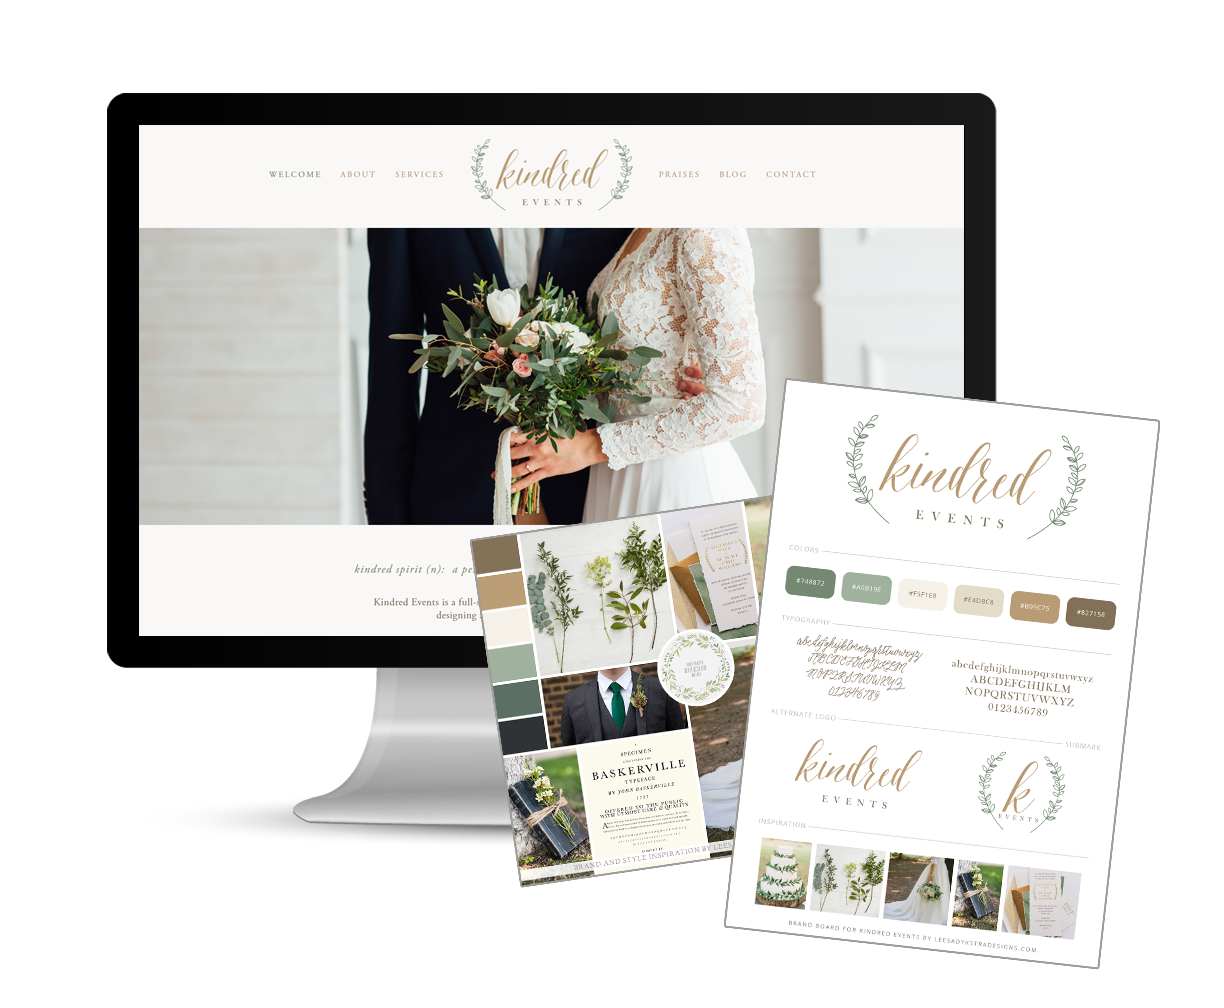 Leesa Dykstra Designs - Kindred Events